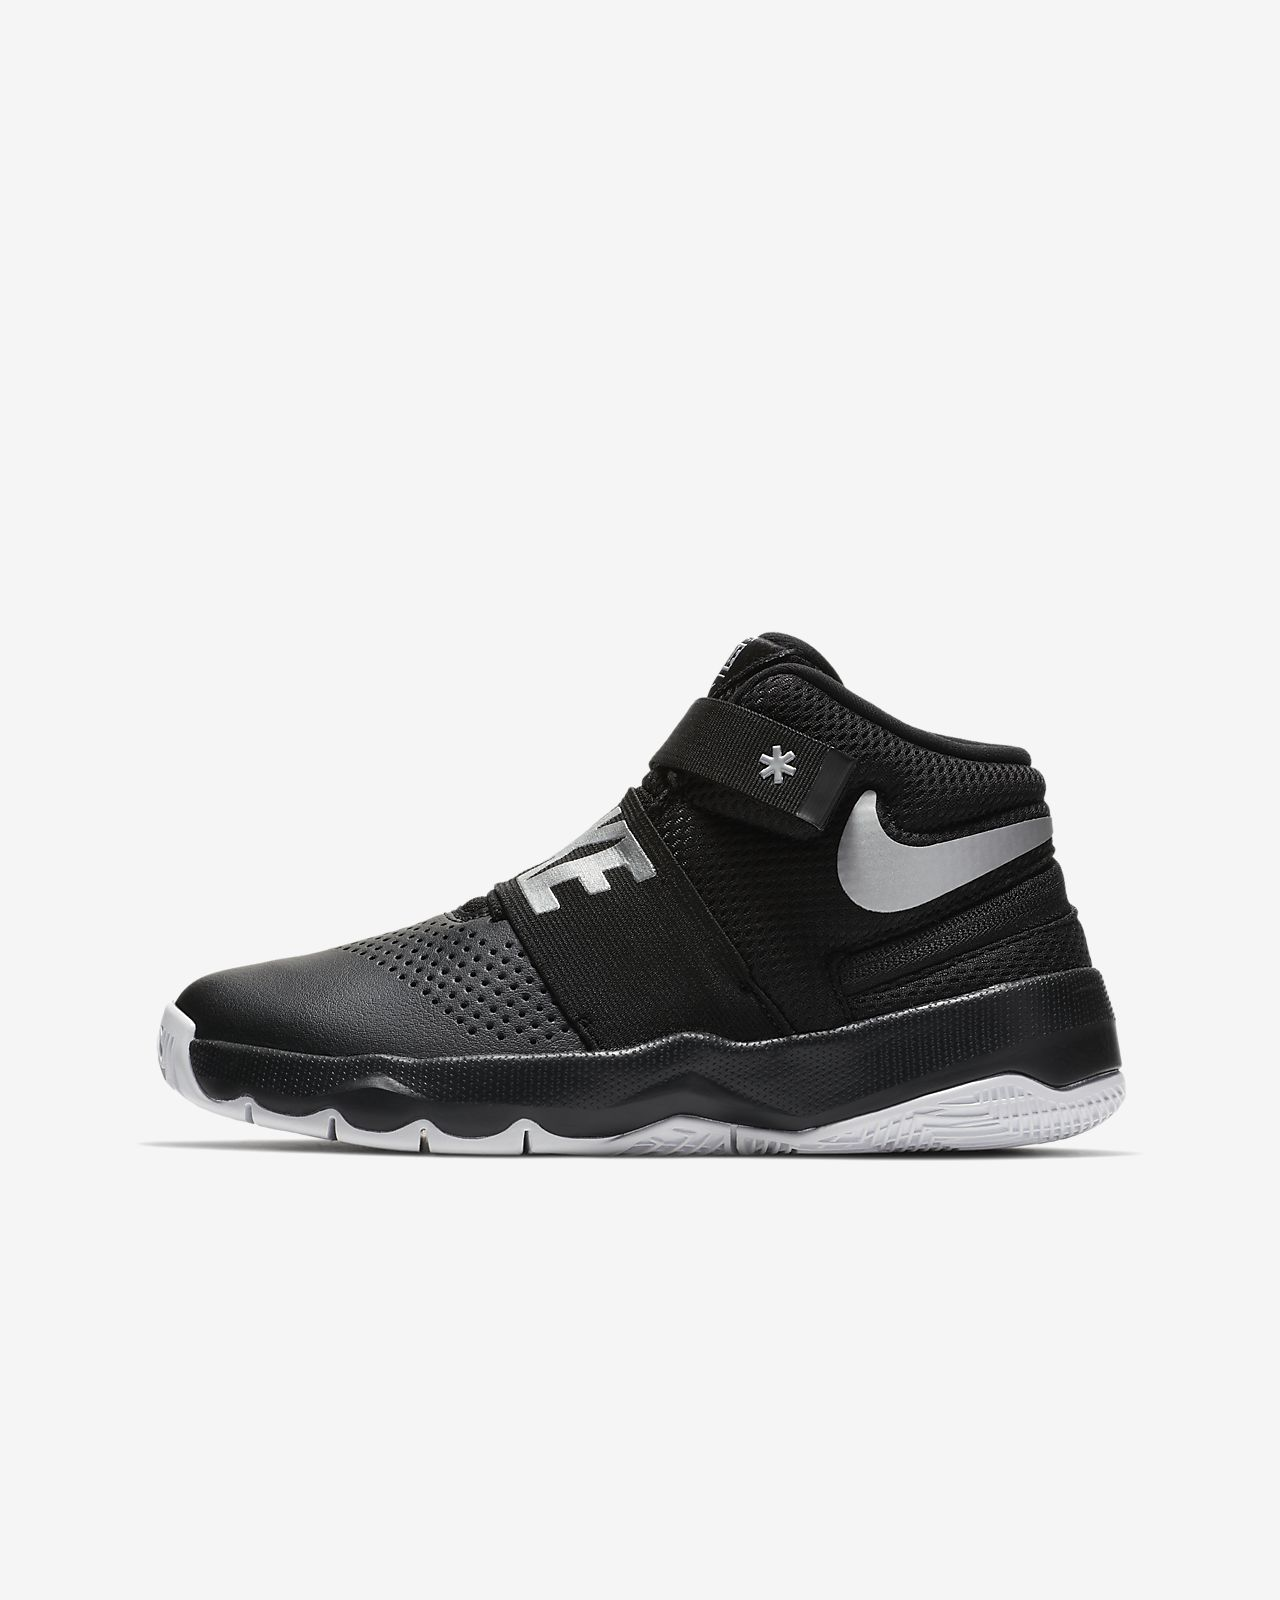 2163cc692e4 Nike Team Hustle D 8 FlyEase Big Kids  Basketball Shoe. Nike.com